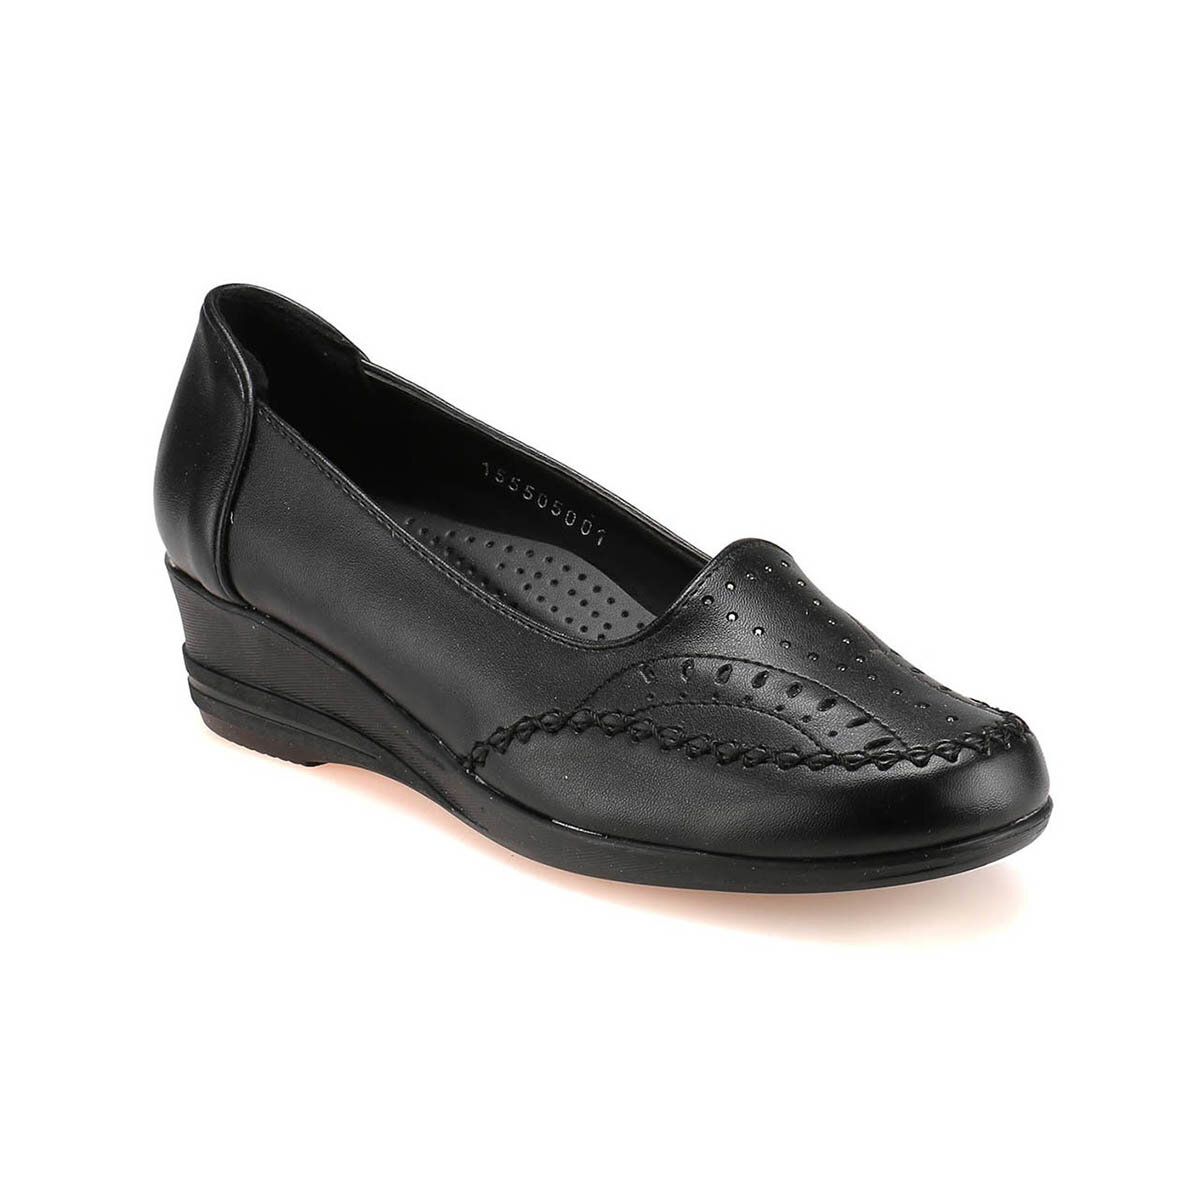 FLO 61.155505FZ Black Women Shoes Polaris